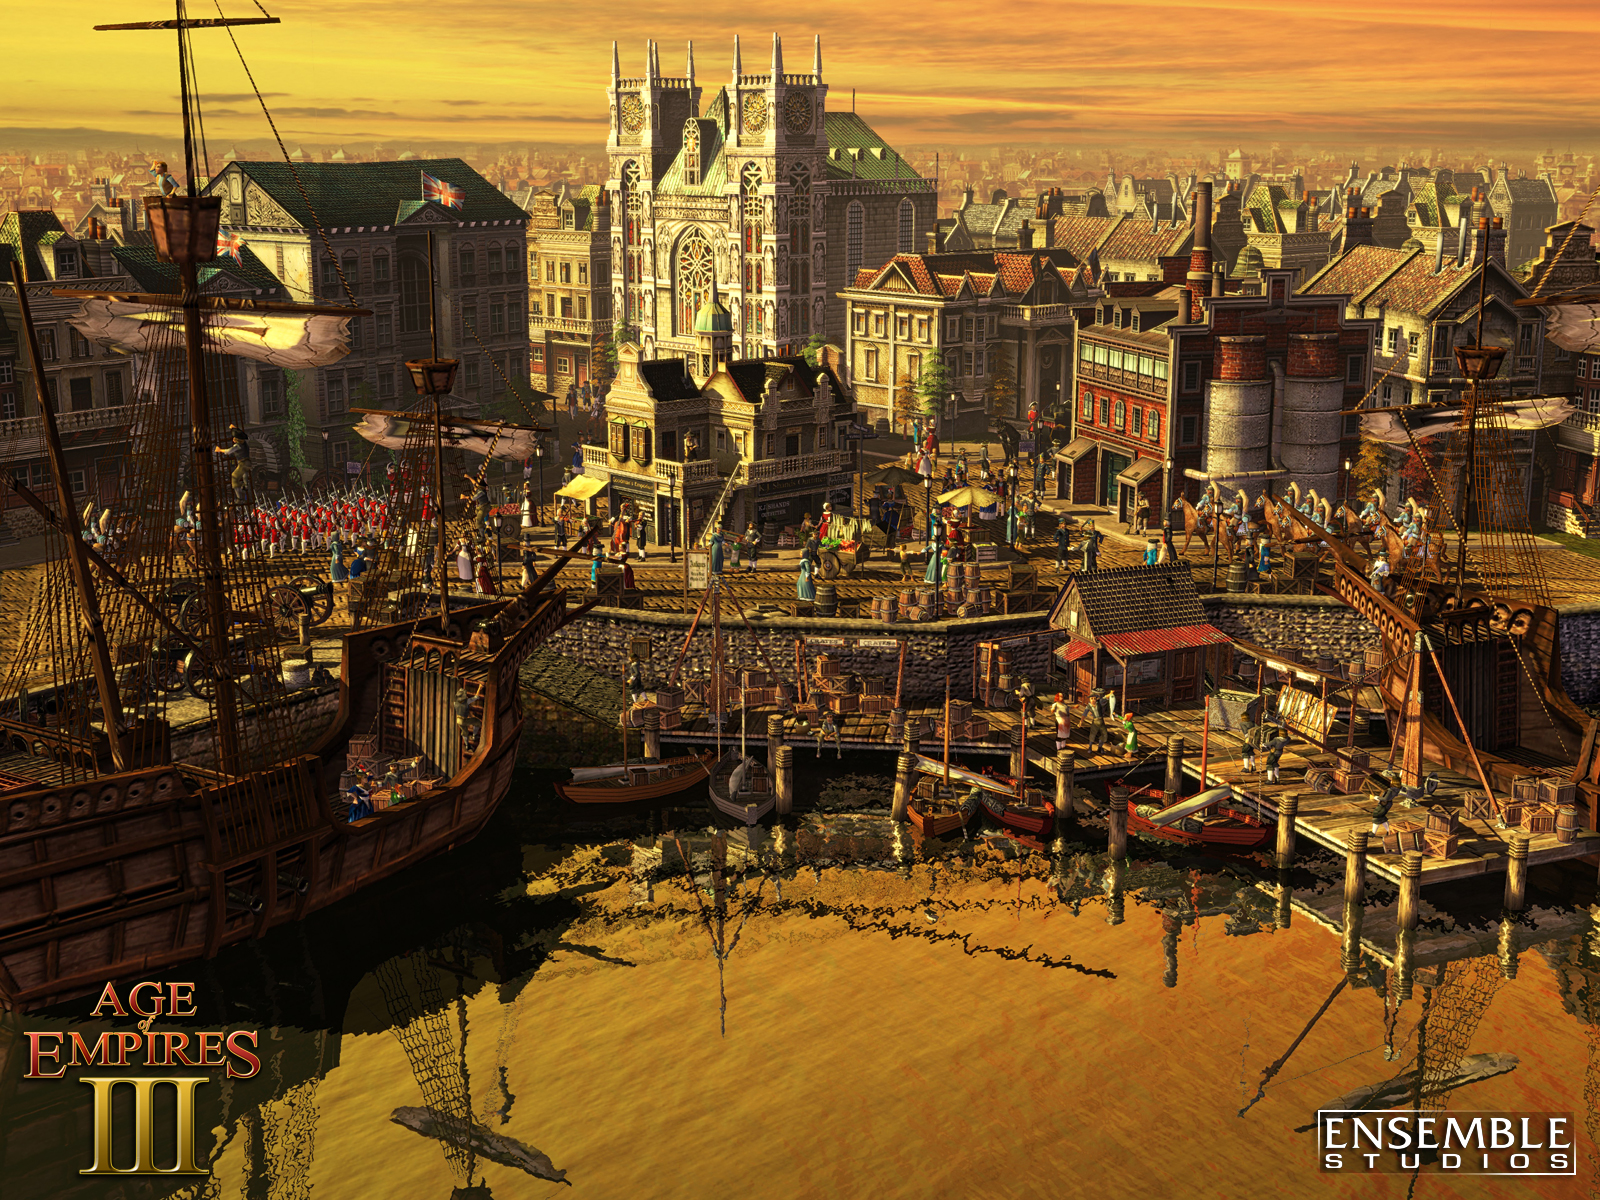 Age Of Empires Wallpaper: 19 Age Of Empires III HD Wallpapers